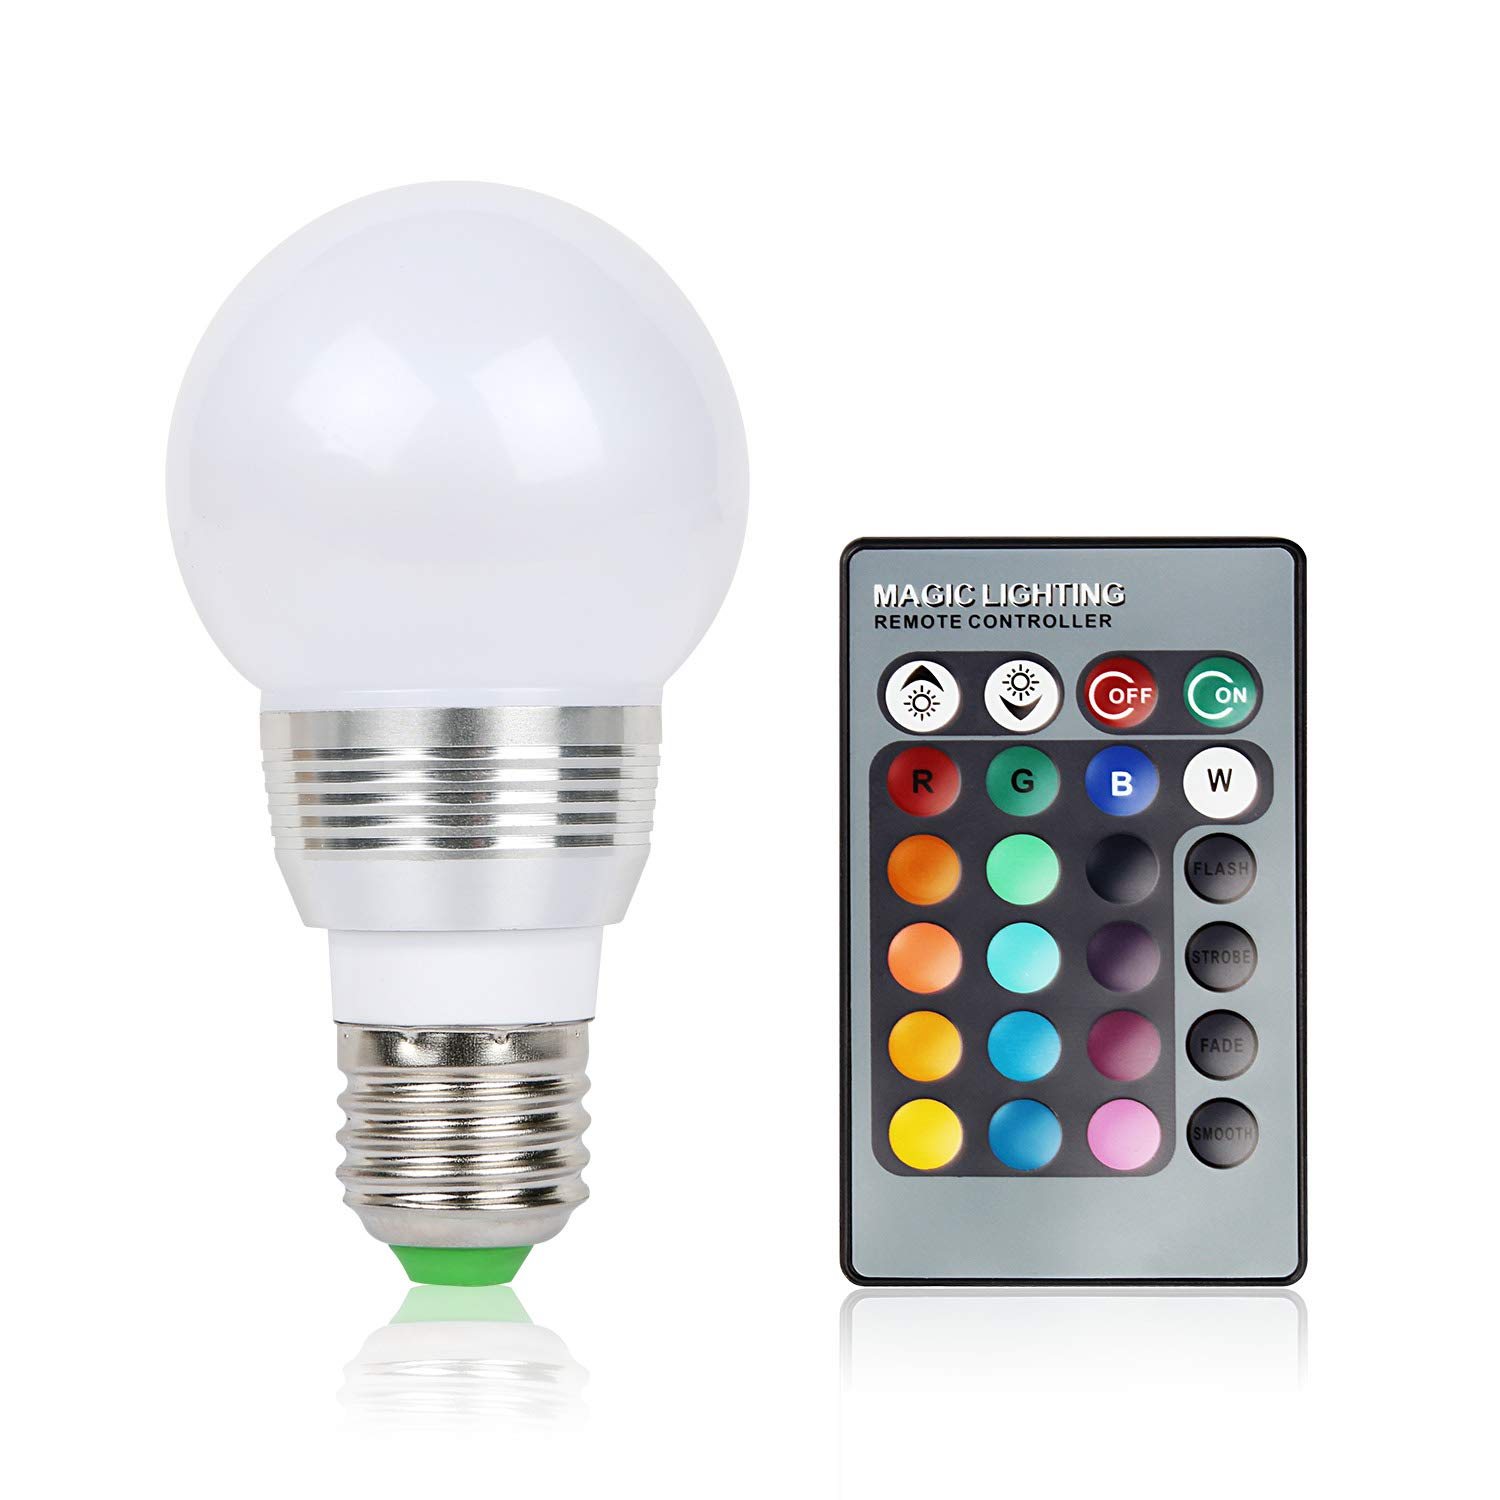 ?RGB LED Light Bulb,Moclever LED Bulb Color Changing Light Bulb with 16 Different Color Choices Smooth - Flash or Strobe Mode - Premium Quality & Energy Saving Retro LED Lamp - Remote Control